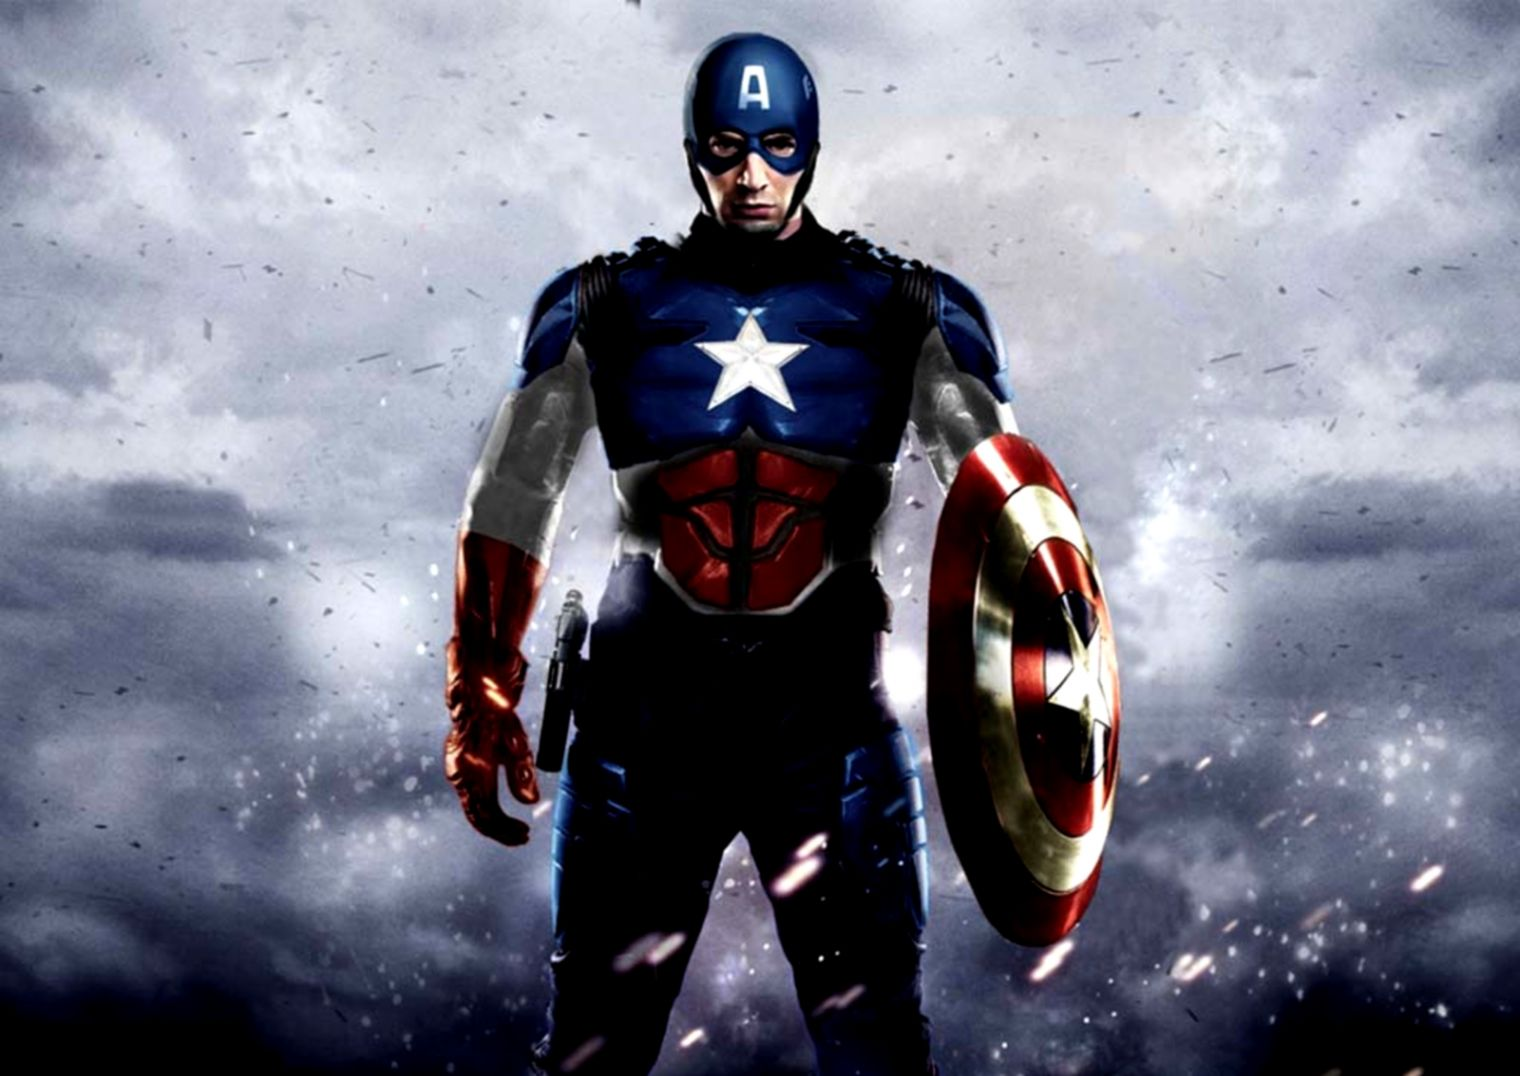 3d captain america wallpaper free download jpg best hd - Captain america hd images download ...